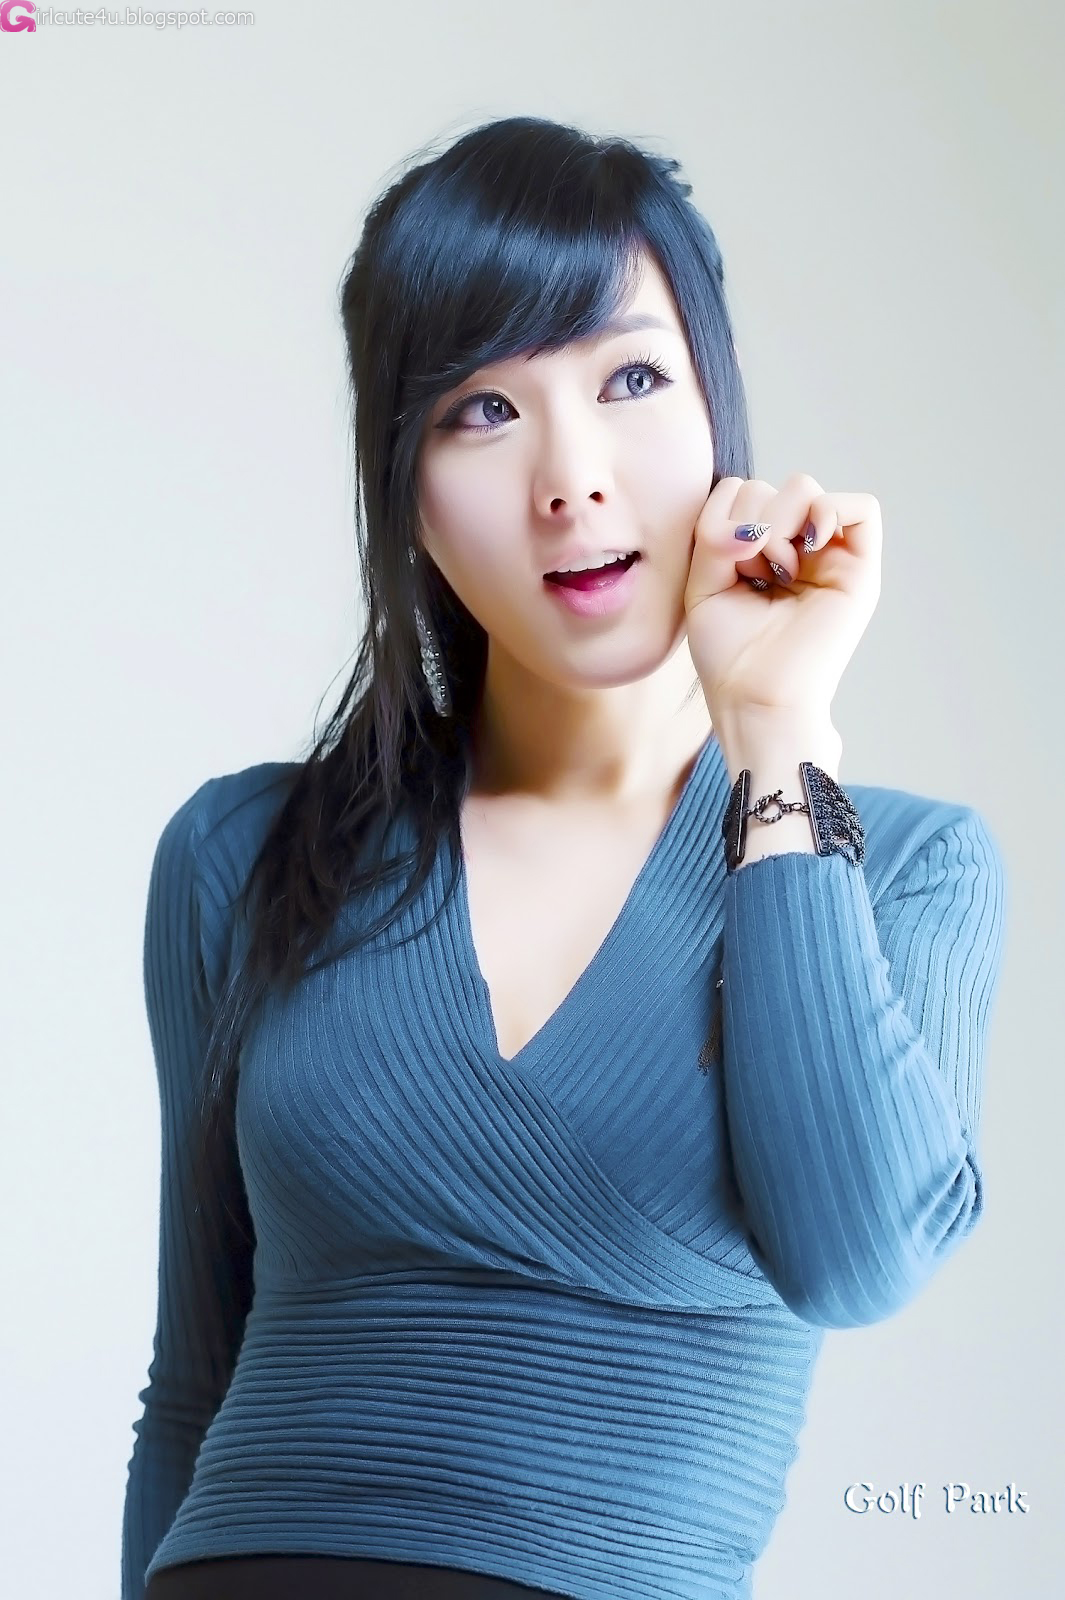 hee asian girl personals For those of asian descent looking for a date, love, or just connecting online, there's sure to be a site here for you while most don't offer as many features as the most widely-known top dating sites, all seven sites focus entirely on people in asia or those who want to date someone asian.